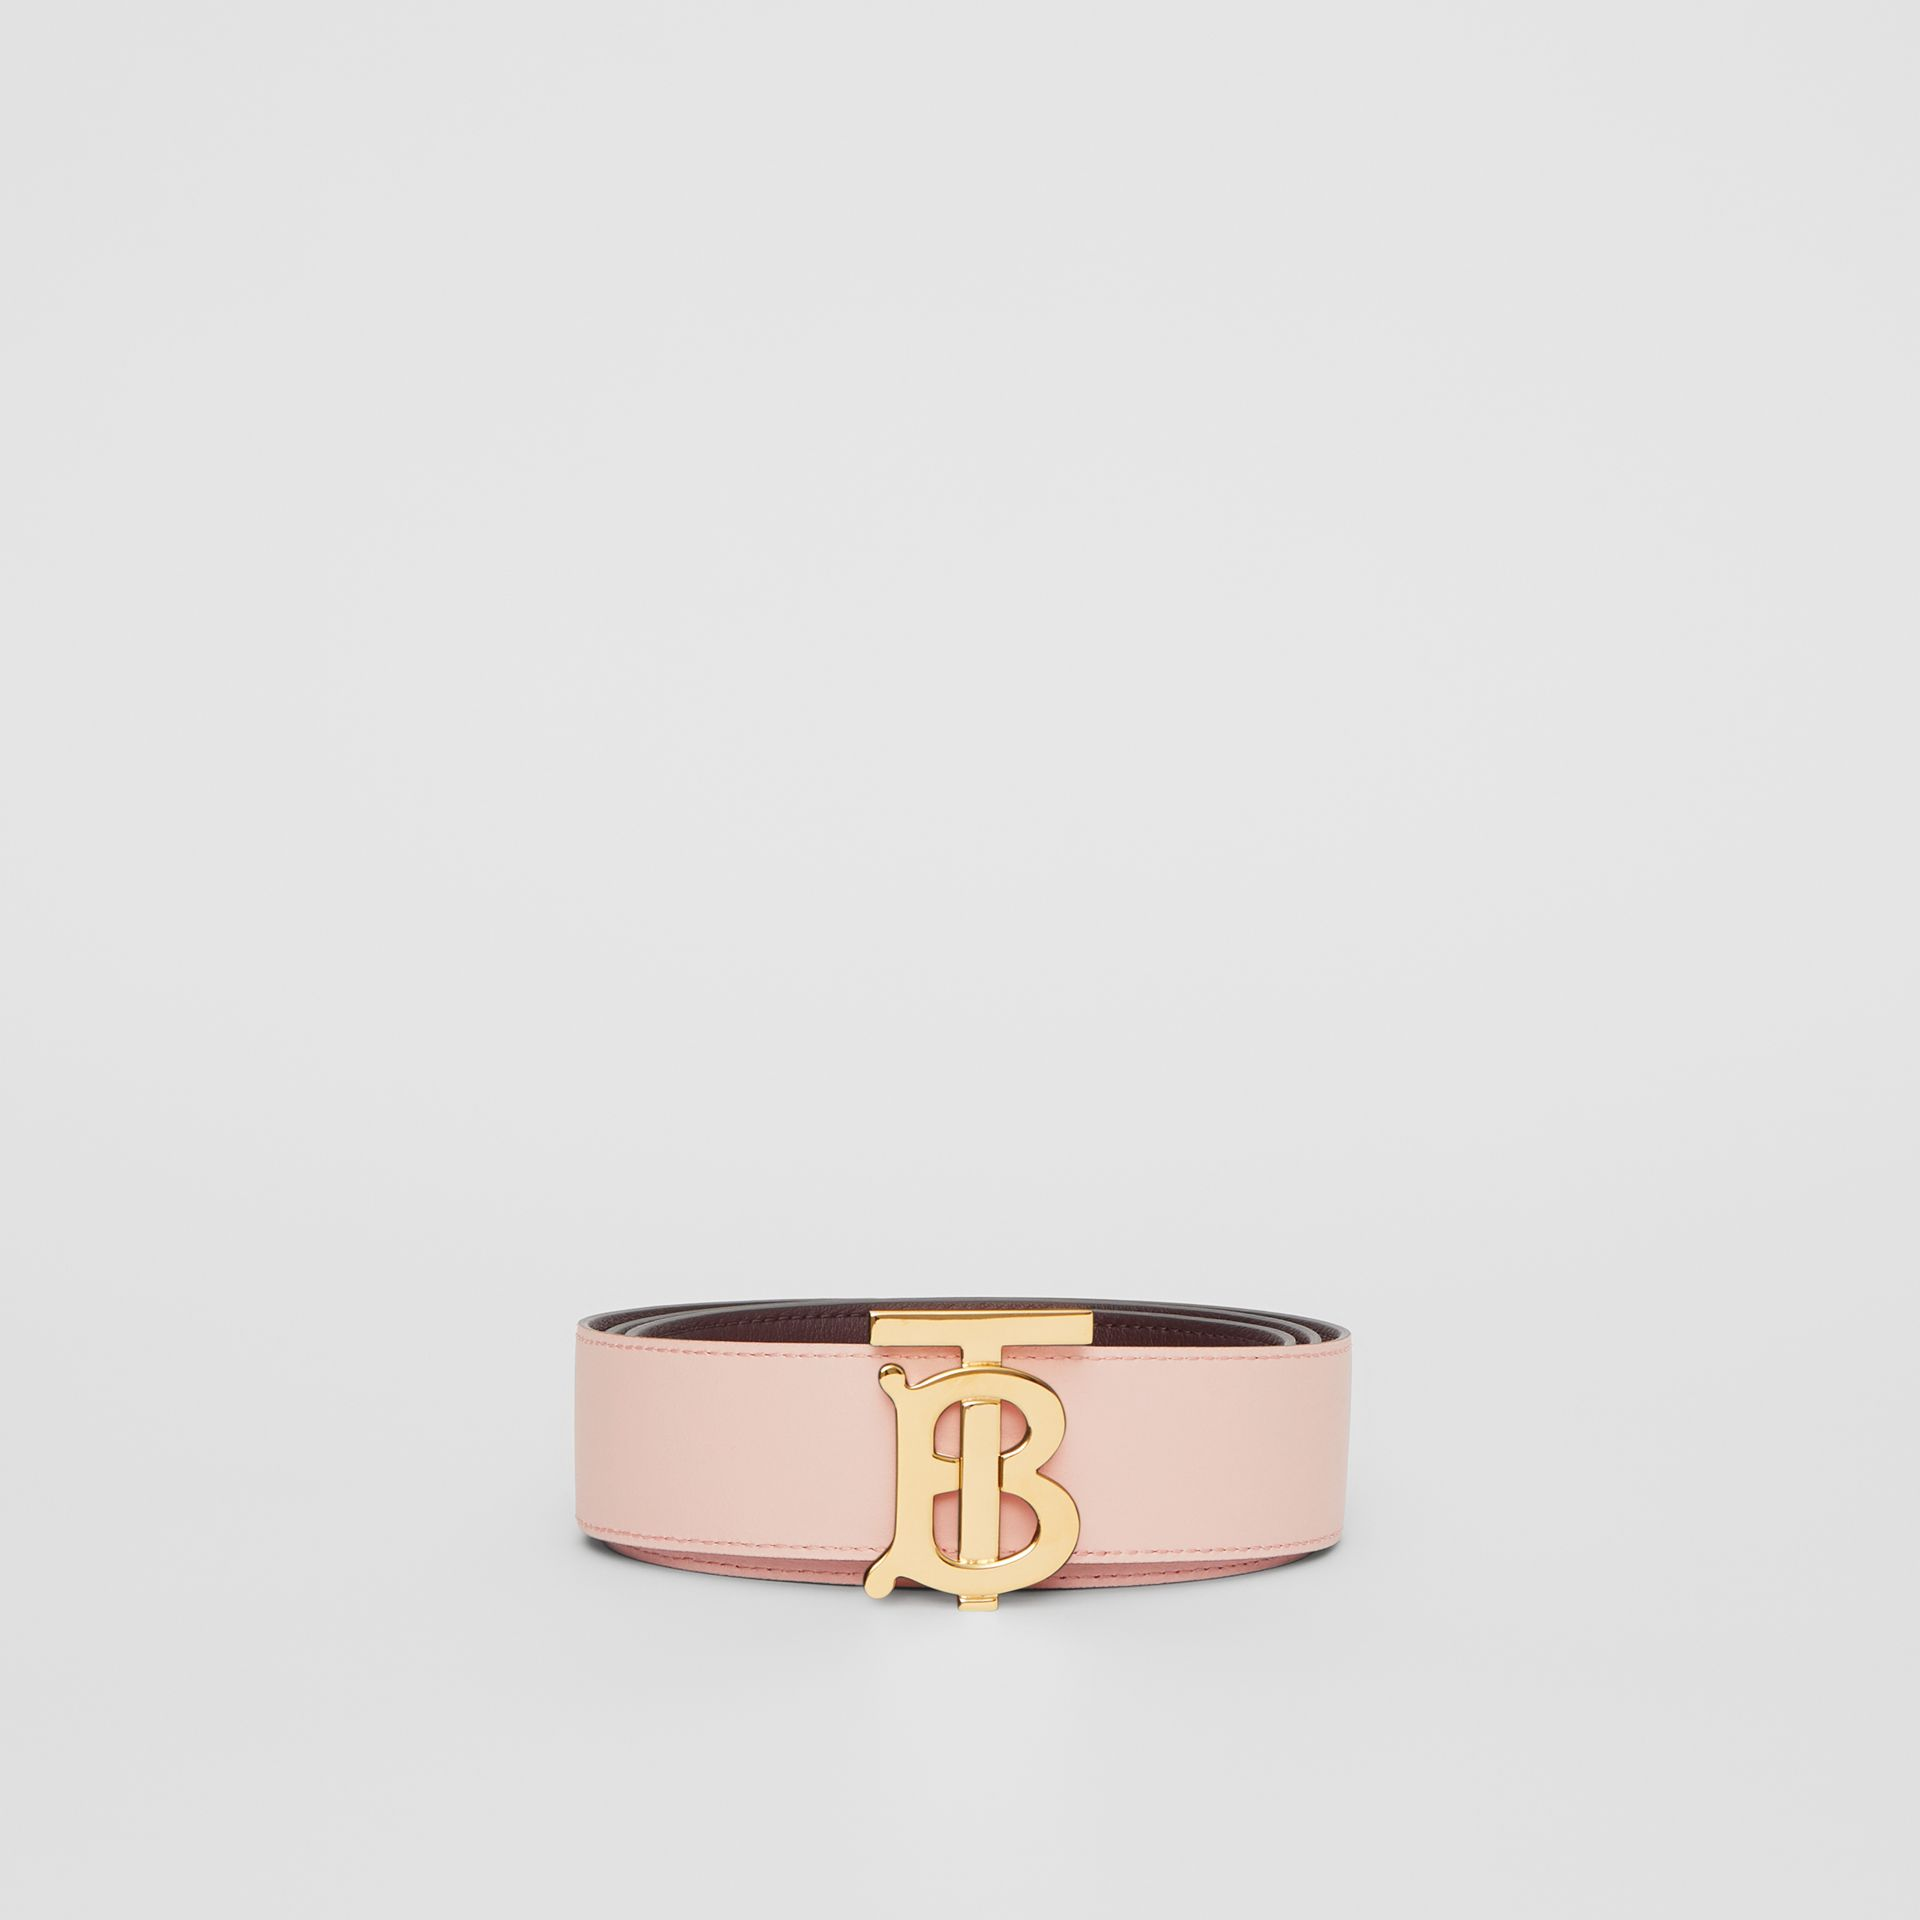 Reversible Monogram Motif Leather Belt in Oxblood/rose Beige - Women | Burberry - gallery image 7